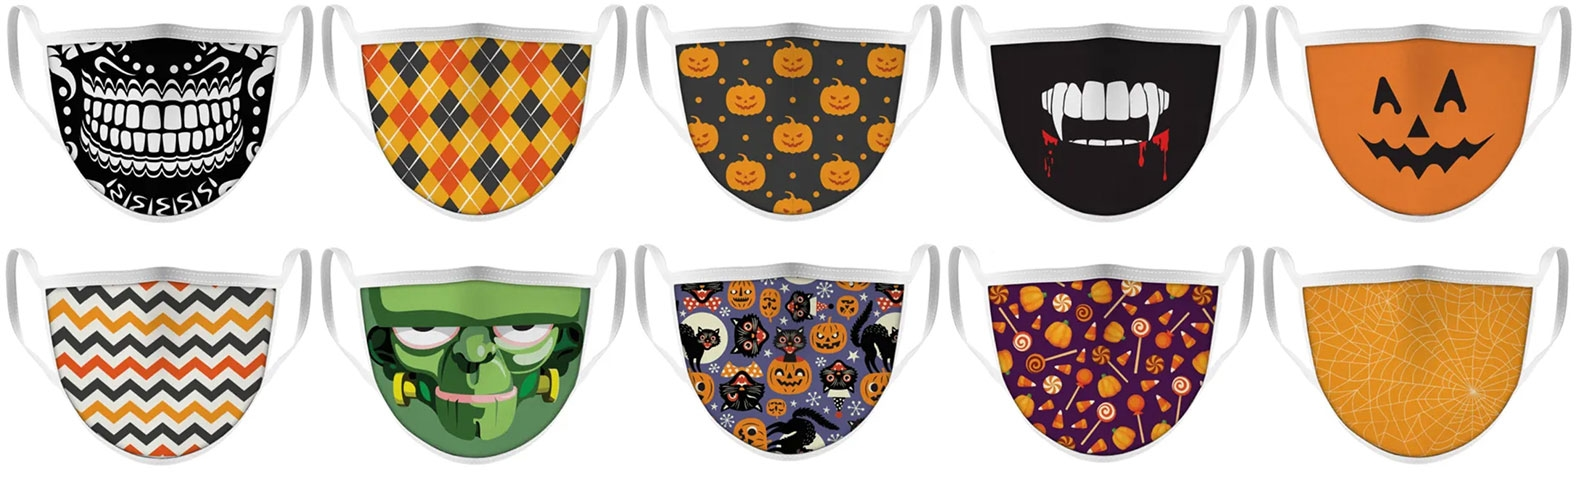 Face Masks with Halloween Designs